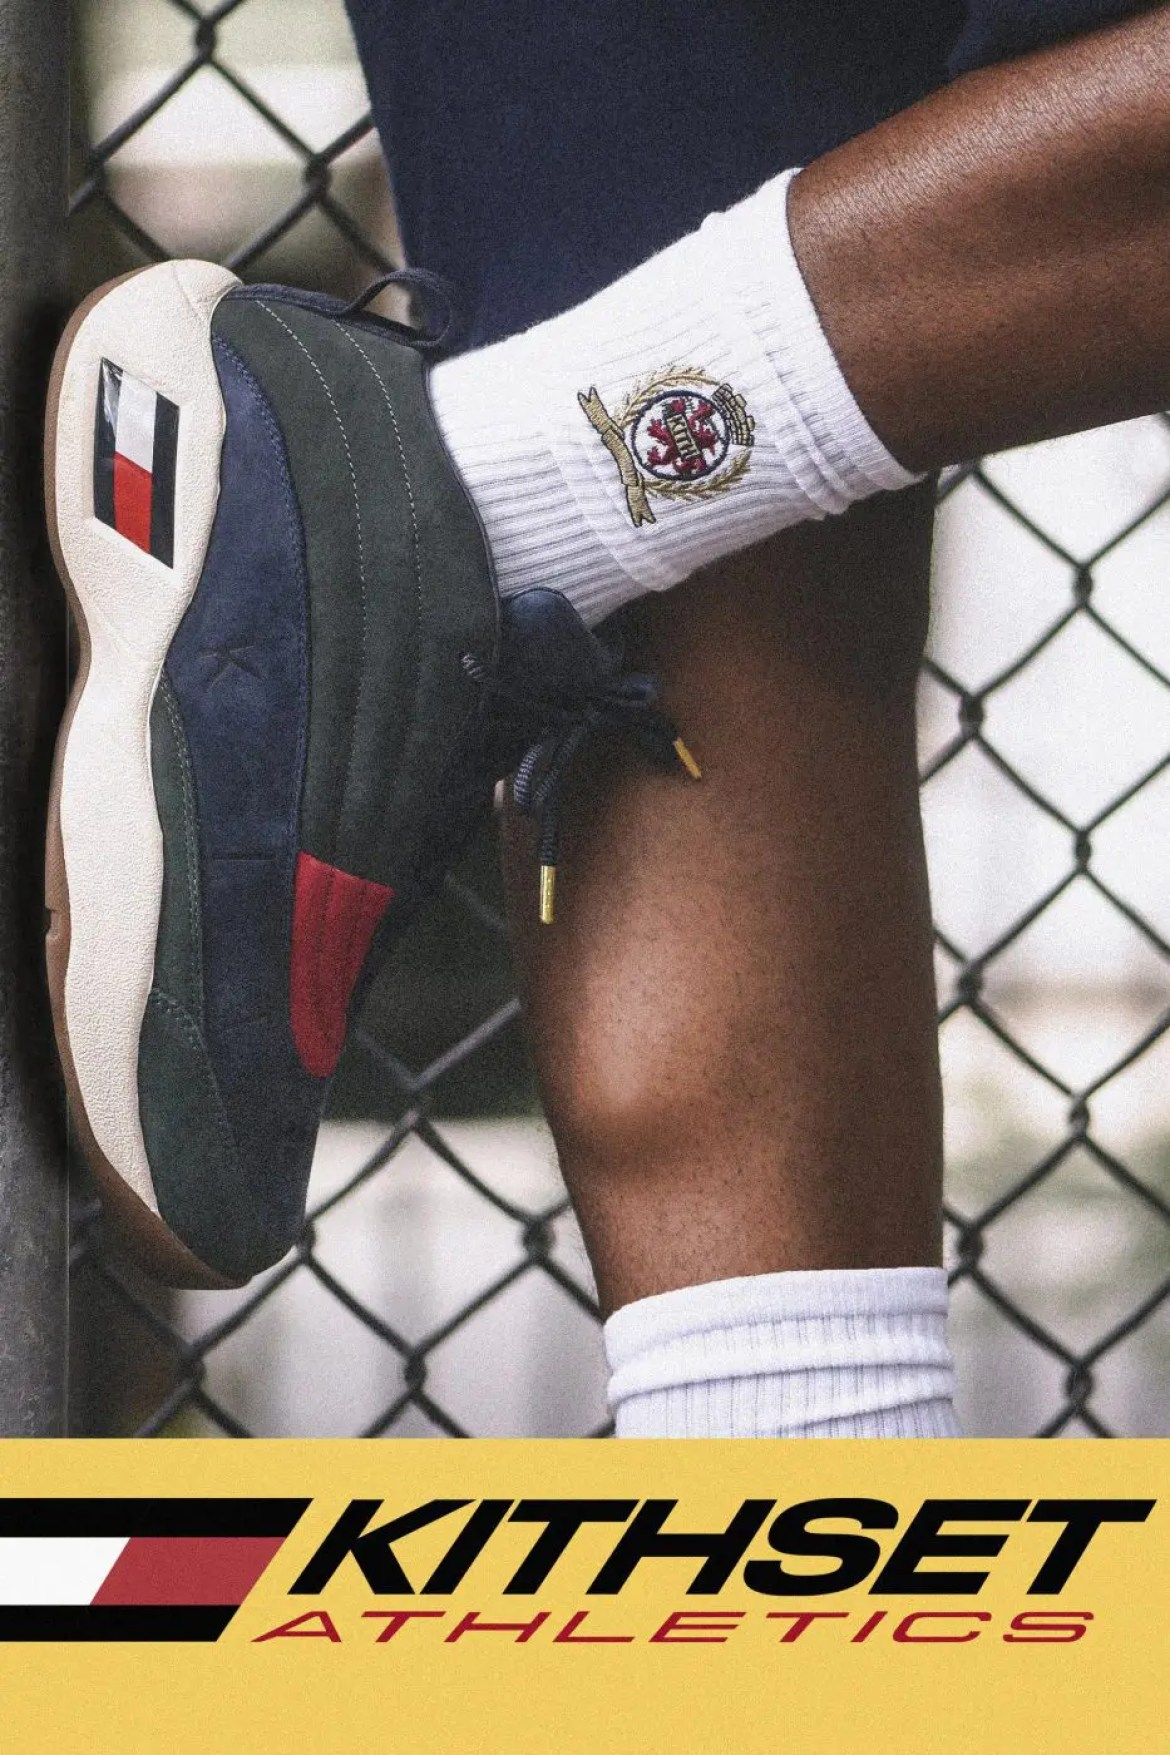 https_hypebeast.comimage201808ronnie-fieg-previews-tommy-hilfiger-kith-collaboration-8